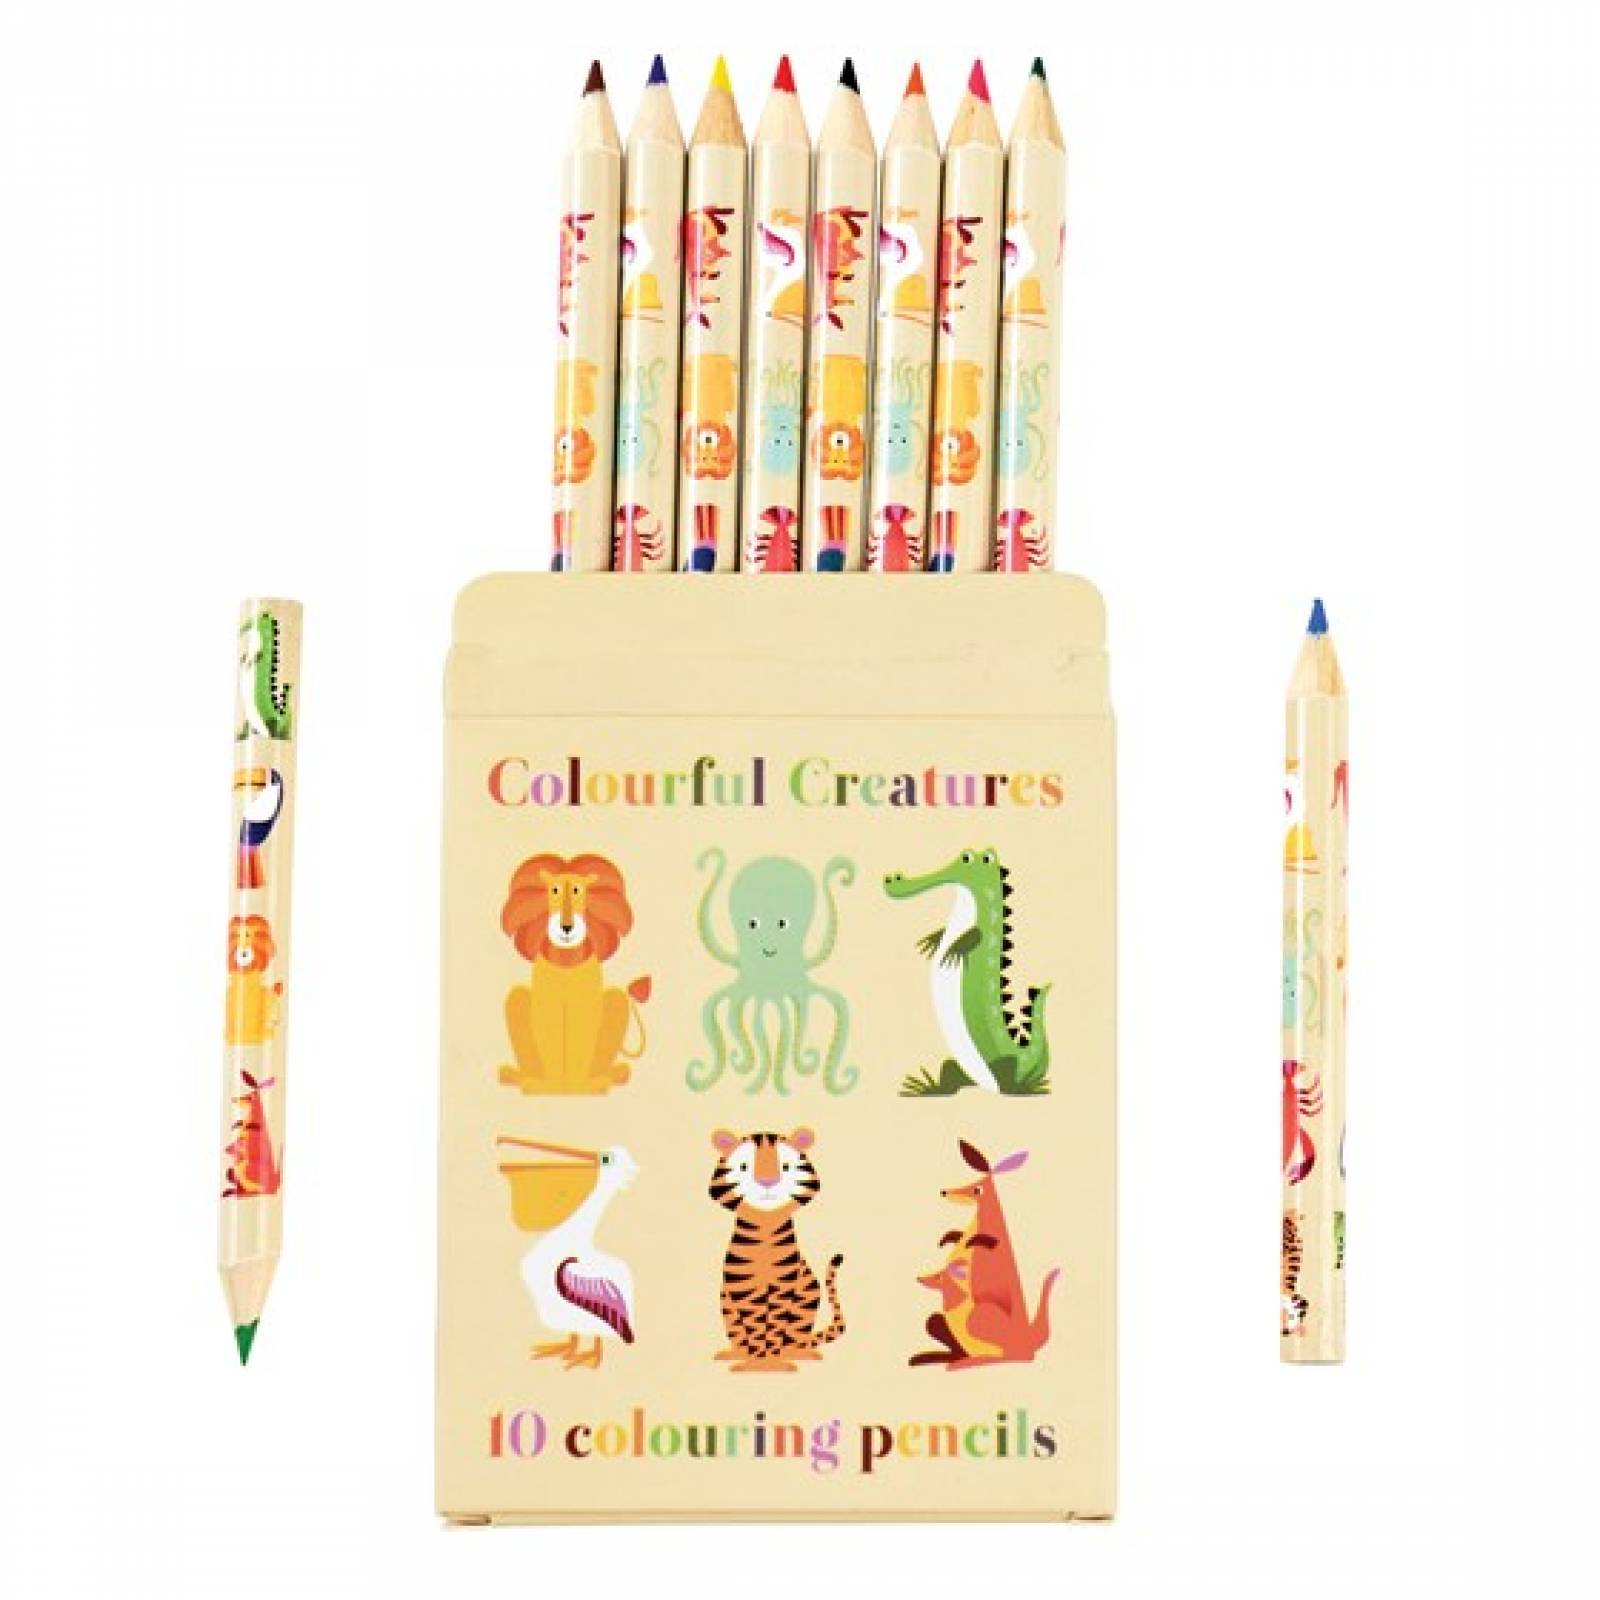 Colourful Creatures Colouring Pencils x 10 In Box